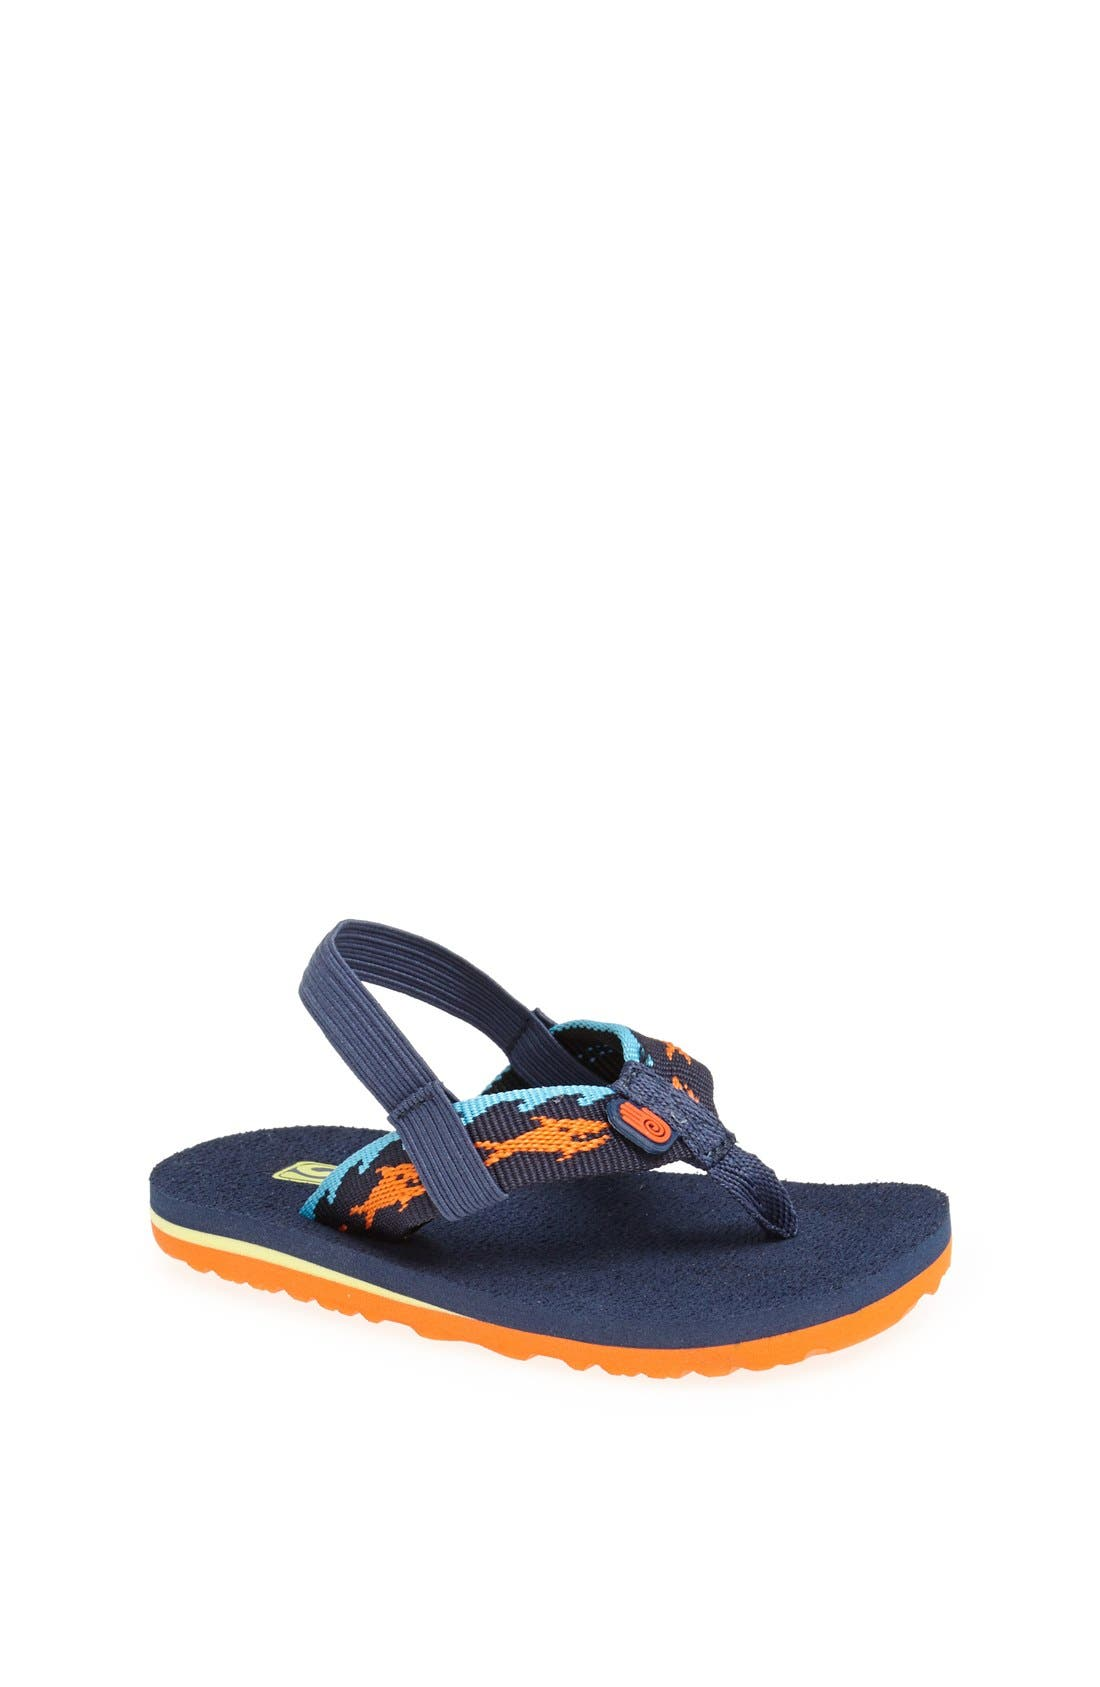 Alternate Image 1 Selected - Teva 'Mush' Sandal (Baby & Walker)